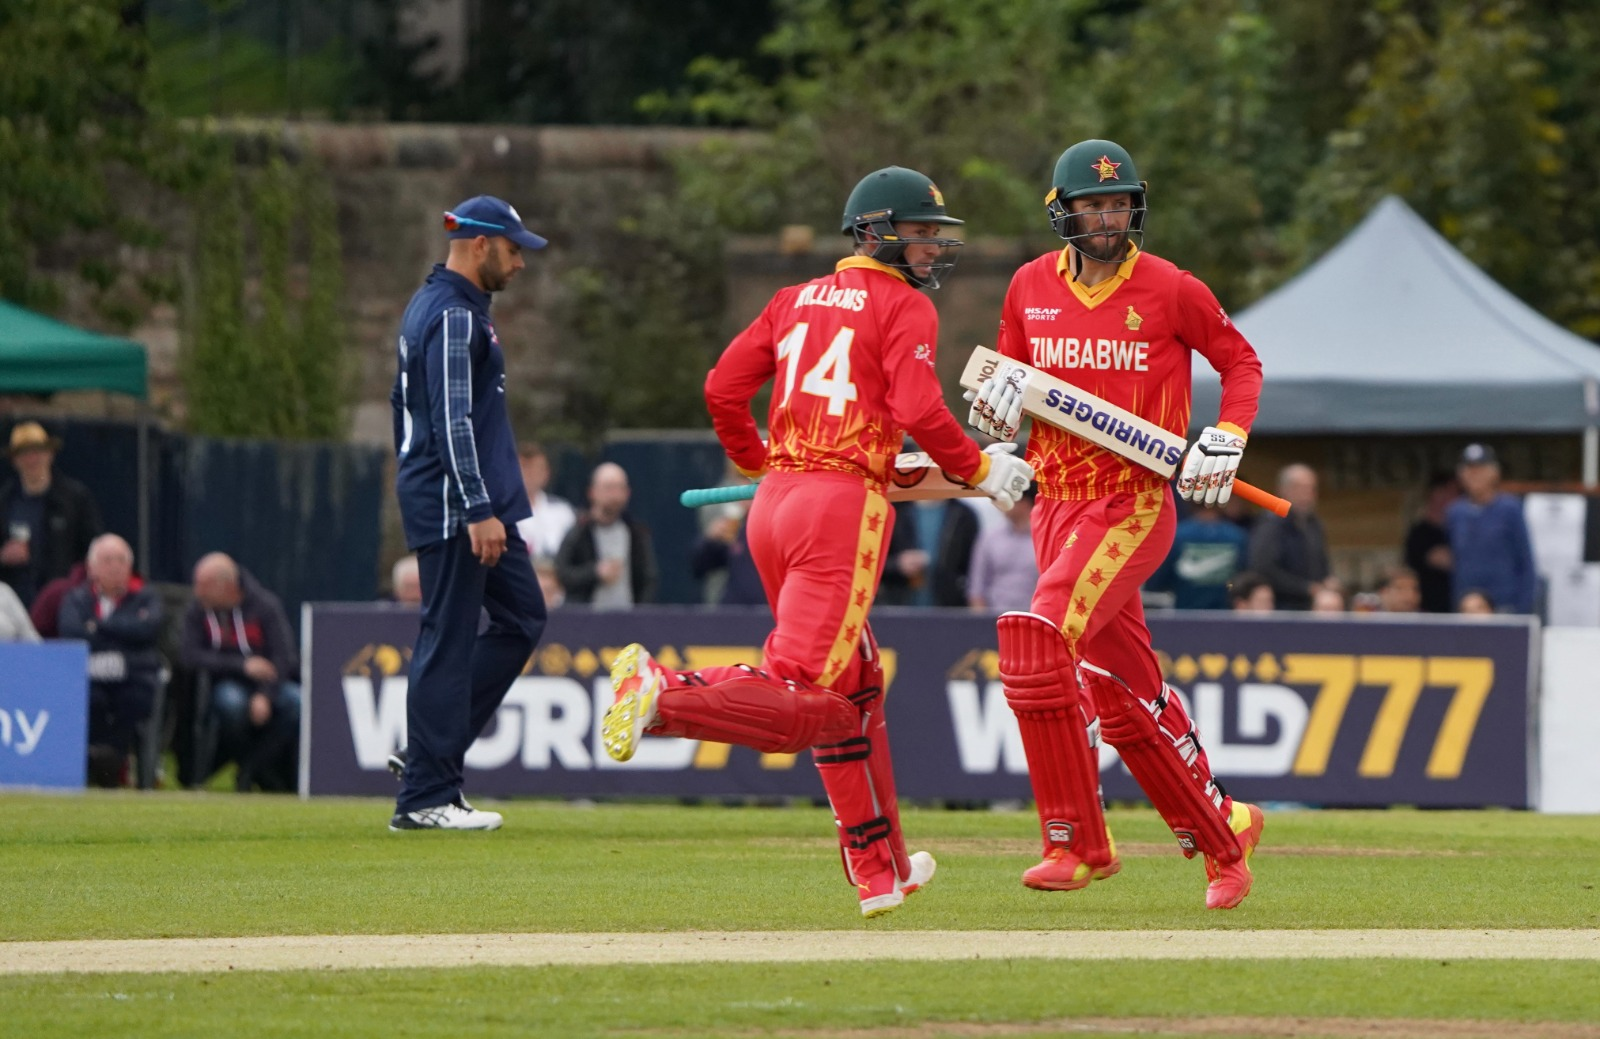 Williams finished unbeaten with 60, scored off 52 balls with five fours and a six